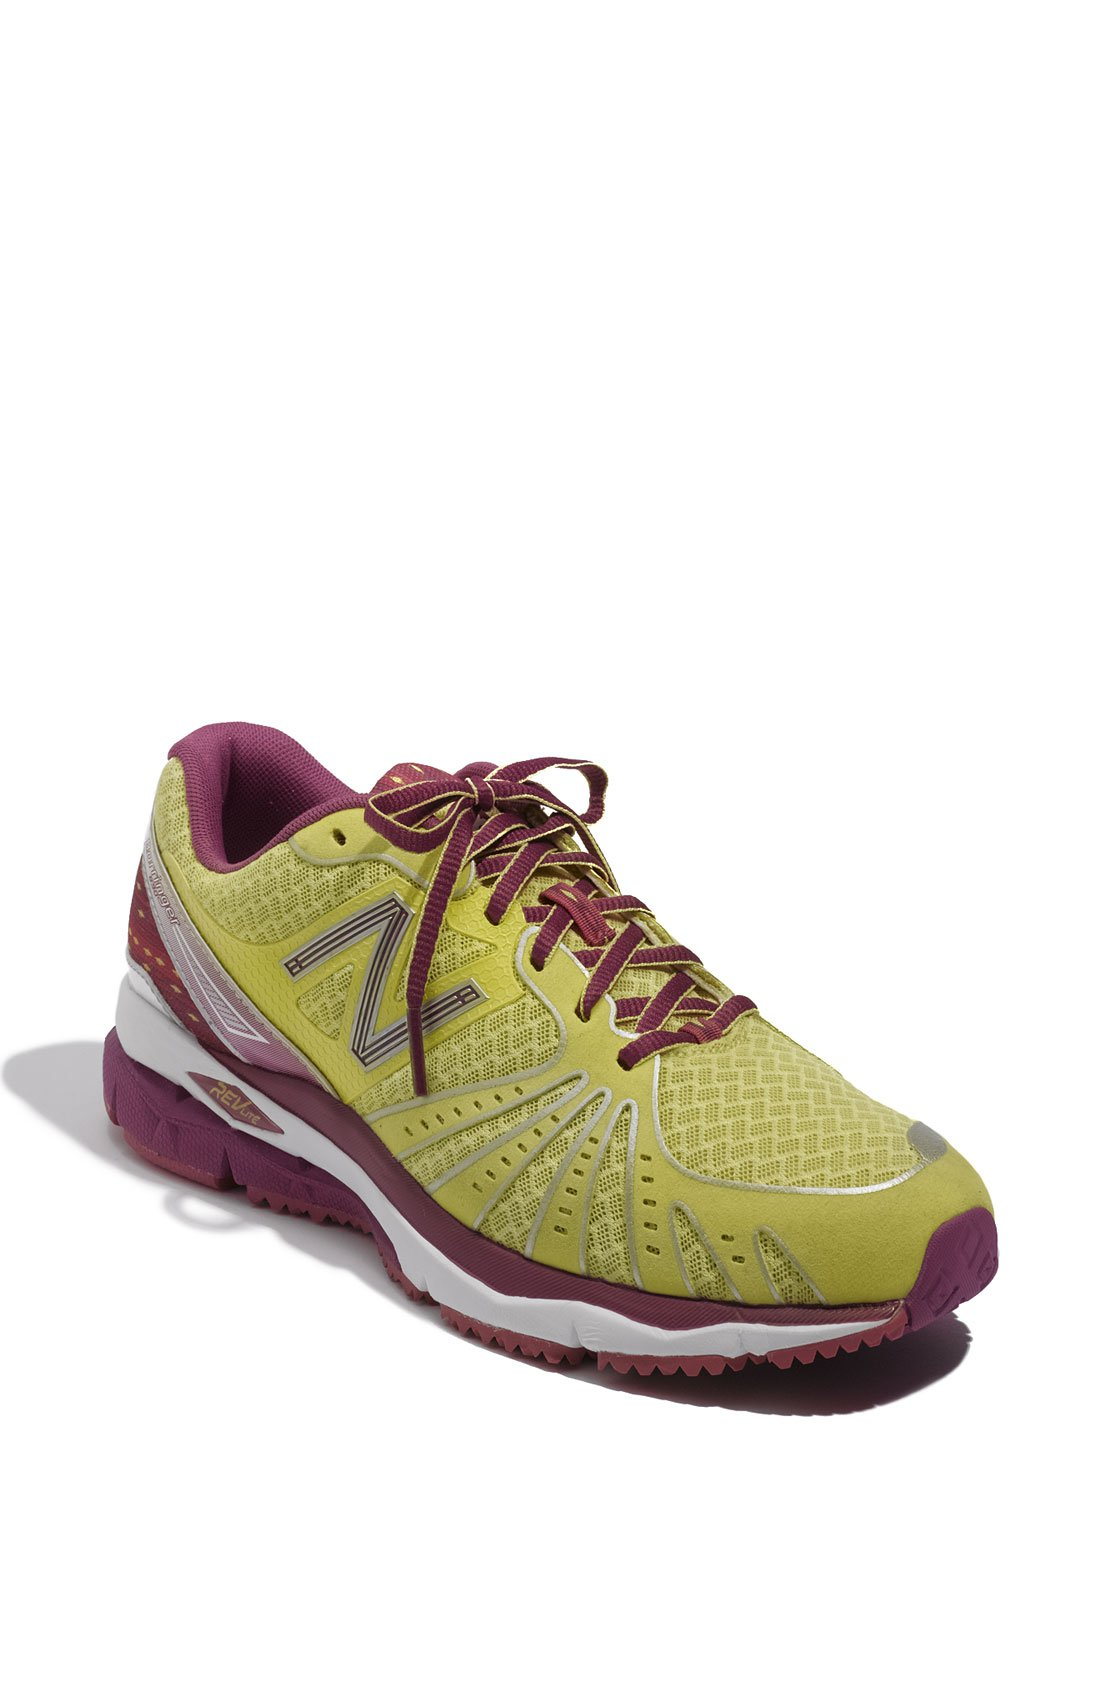 (New Arrivals) -- Checkout the Newest Arrivals in Women's Tennis Shoes. The best prices on Babolat, Asics, adidas, Nike, Lacoste, Wilson, Head, New Balance! Free shipping and returns!